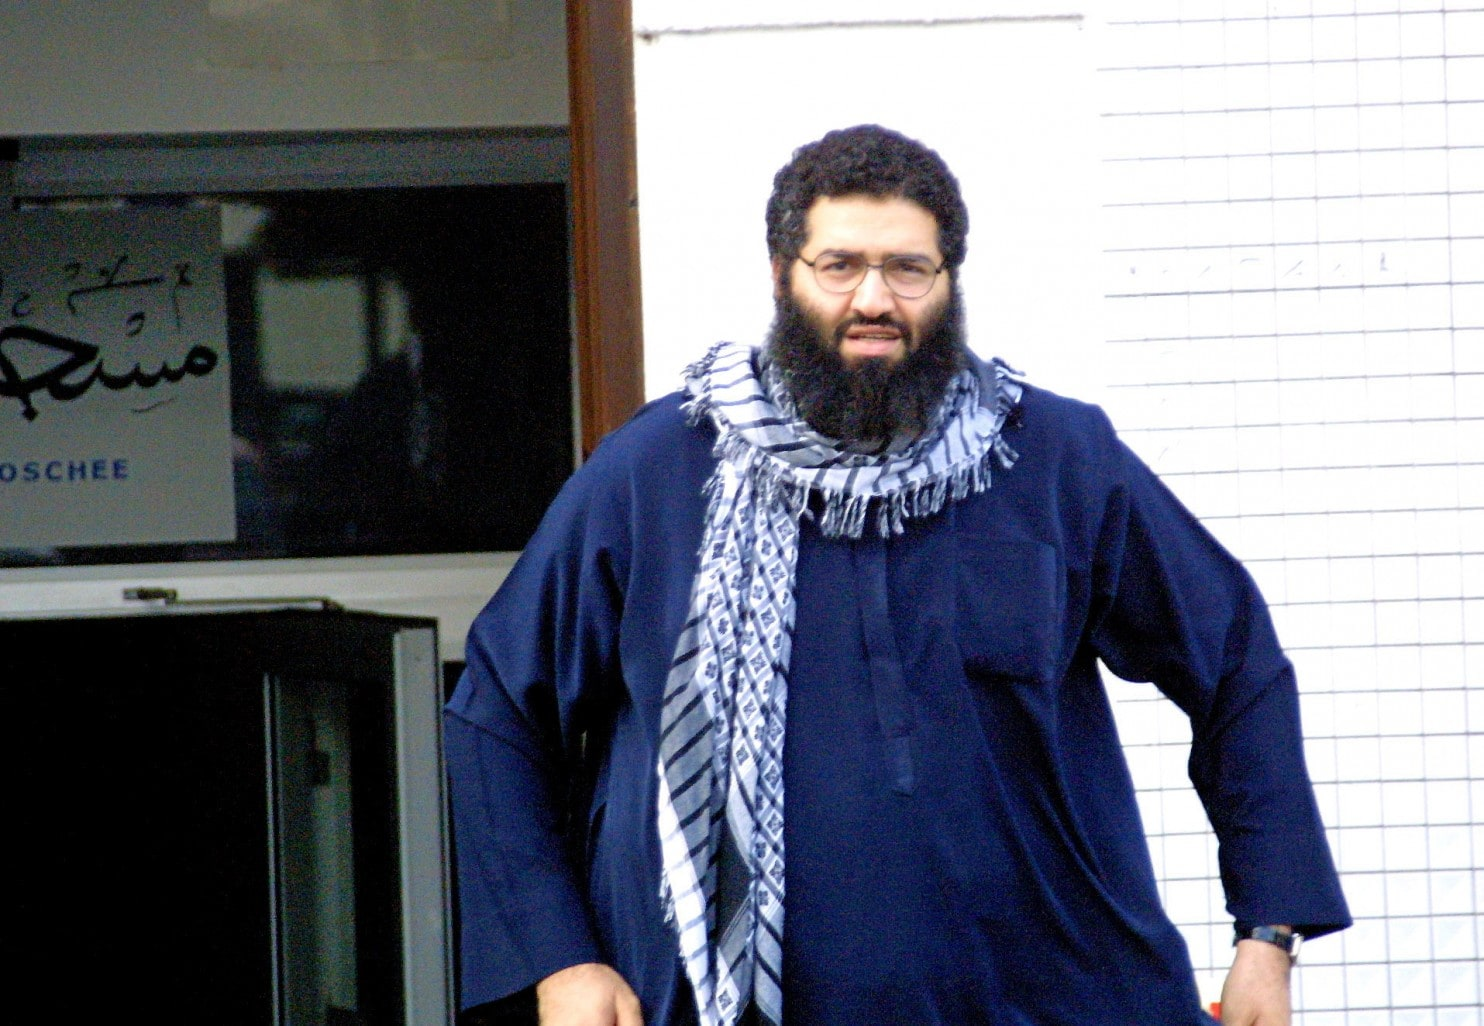 Suspected 9/11 recruiter for Al Qaeda captured in Syria, report says